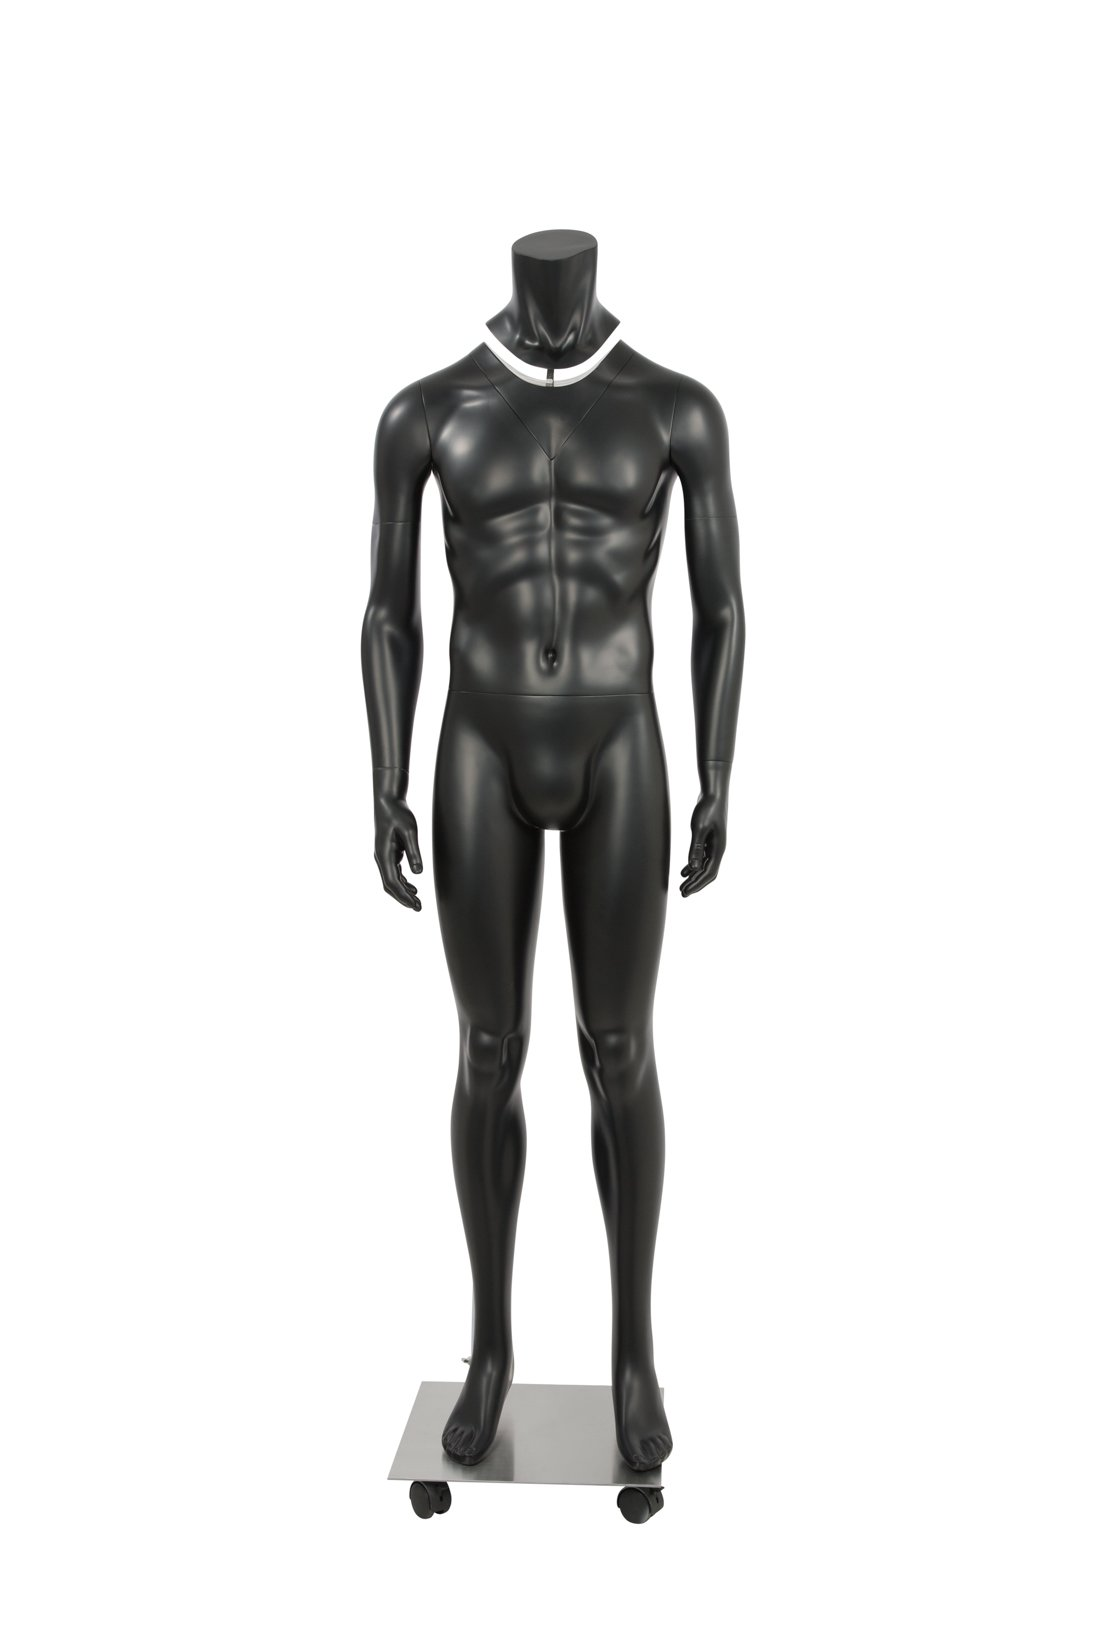 Newtech Display MAM-GHOSTFULL/BLK Photography Ghost Male Mannequin, Full Body, Matte White